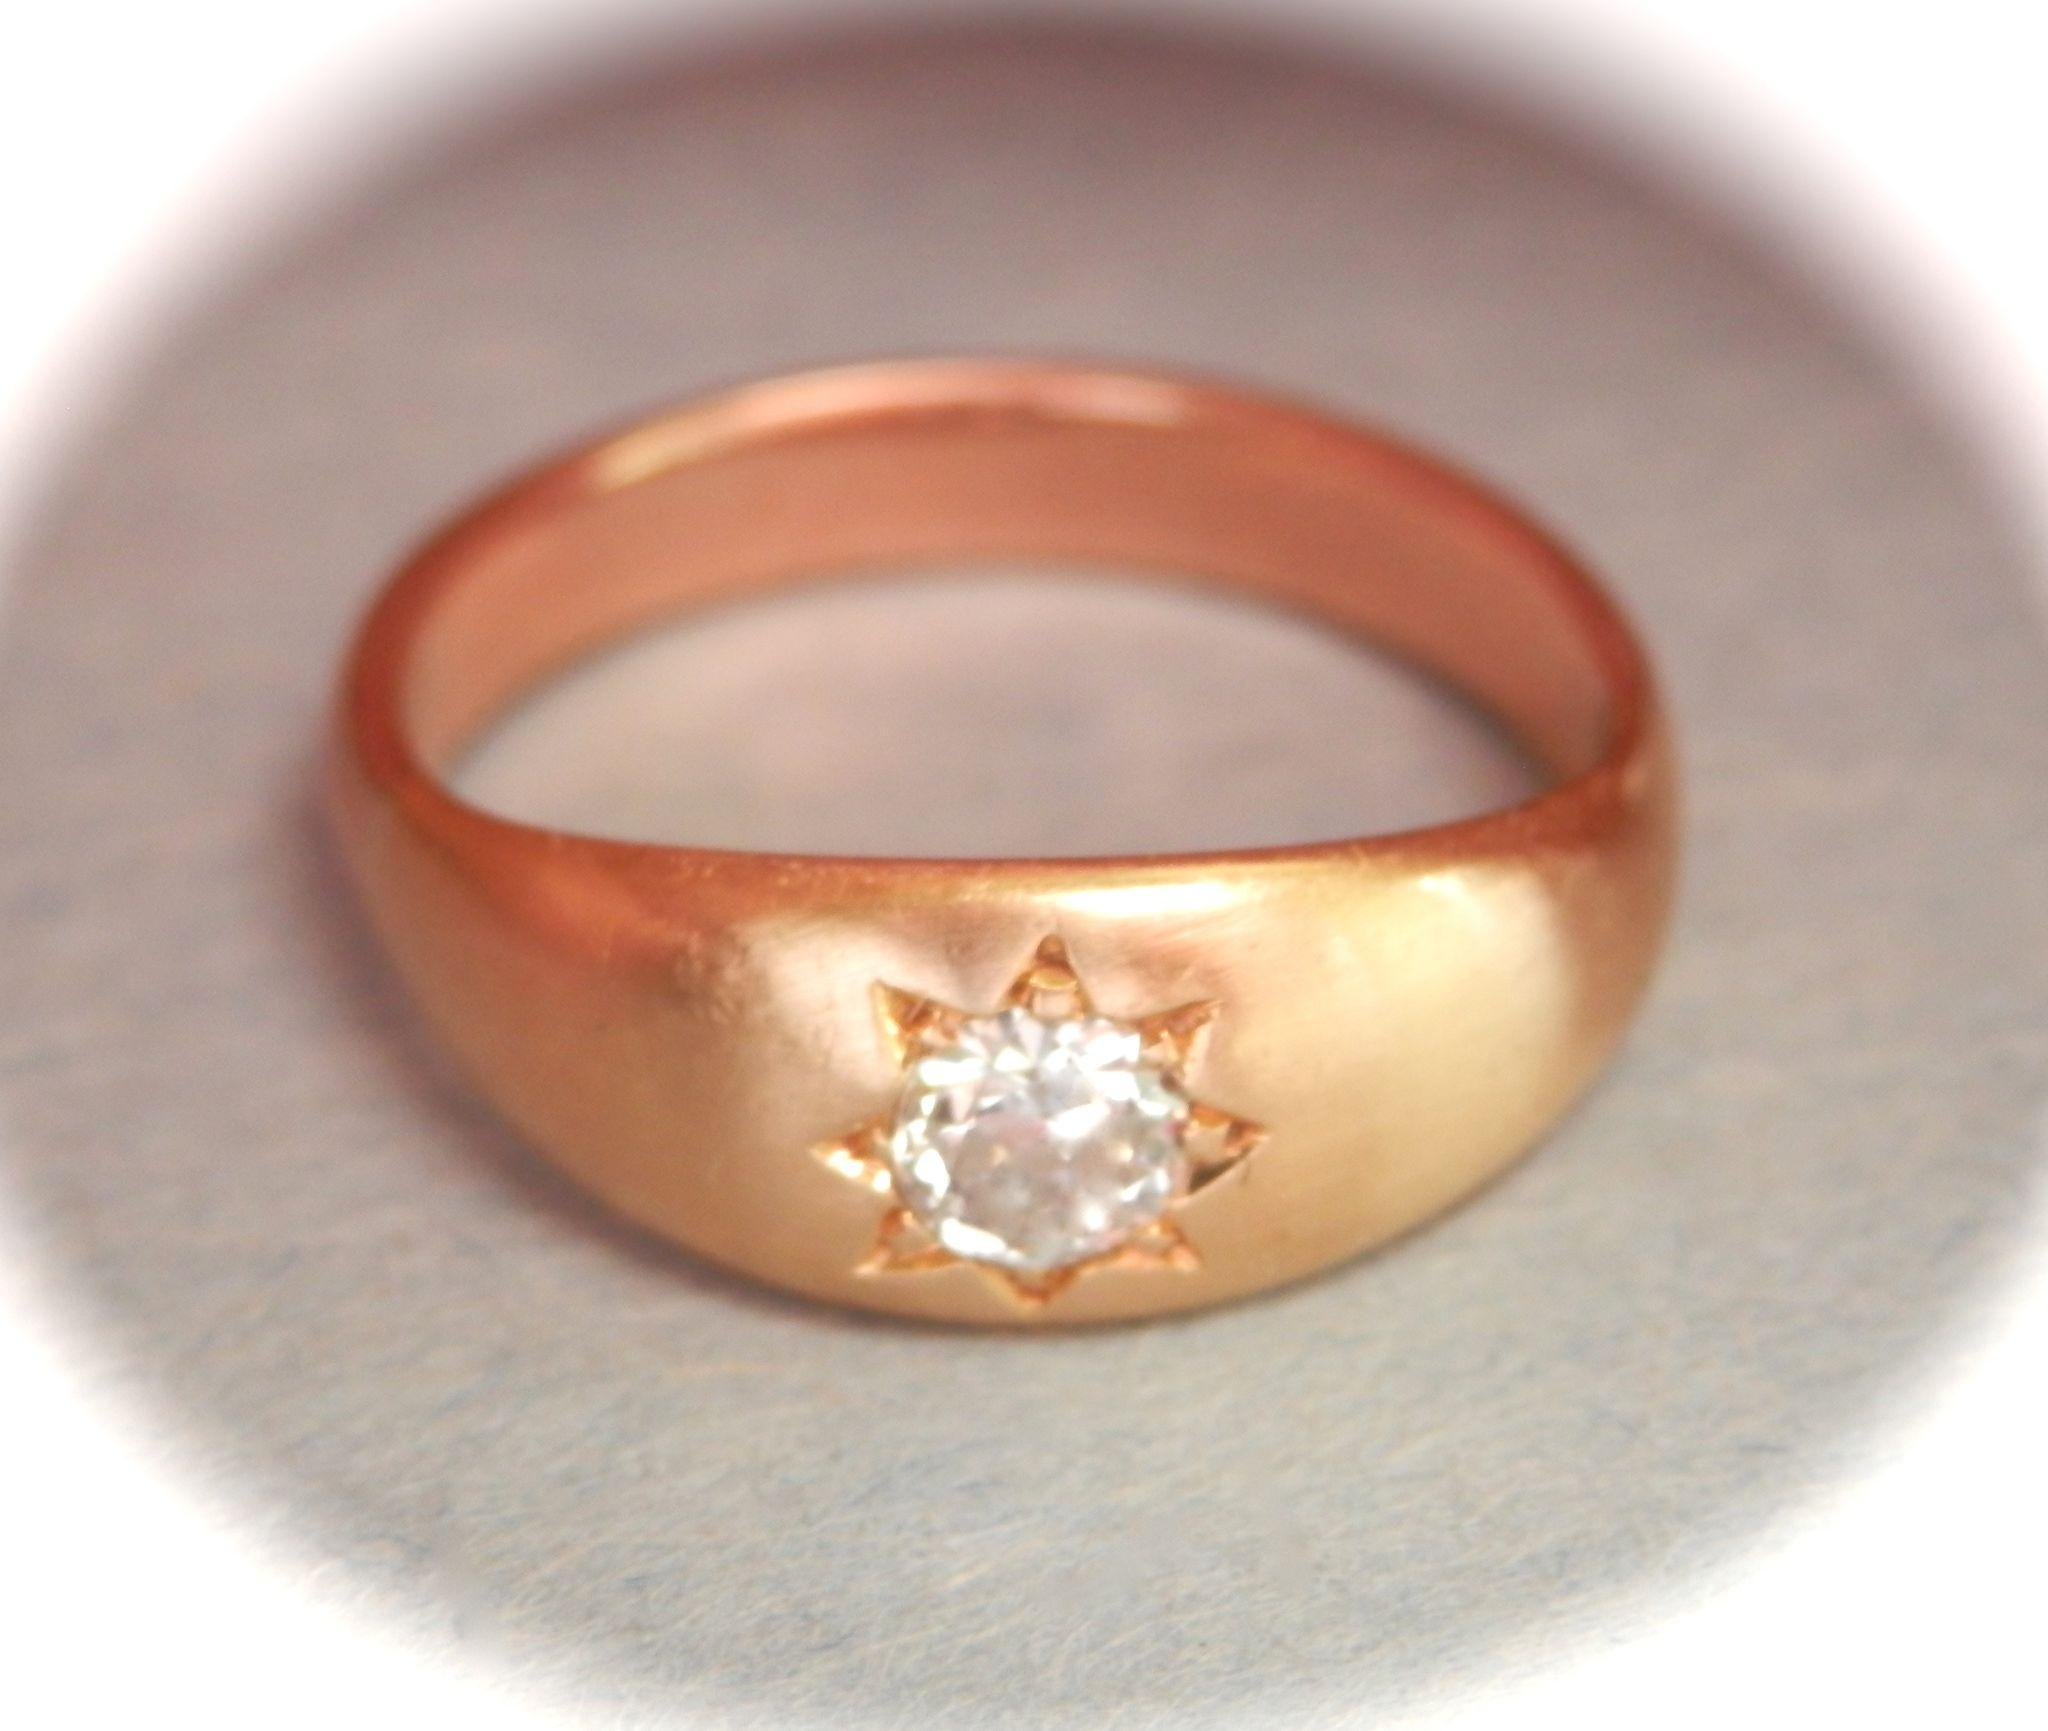 Twinkling 18K & 9K Gold Victorian/Edwardian Diamond Gypsy Ring